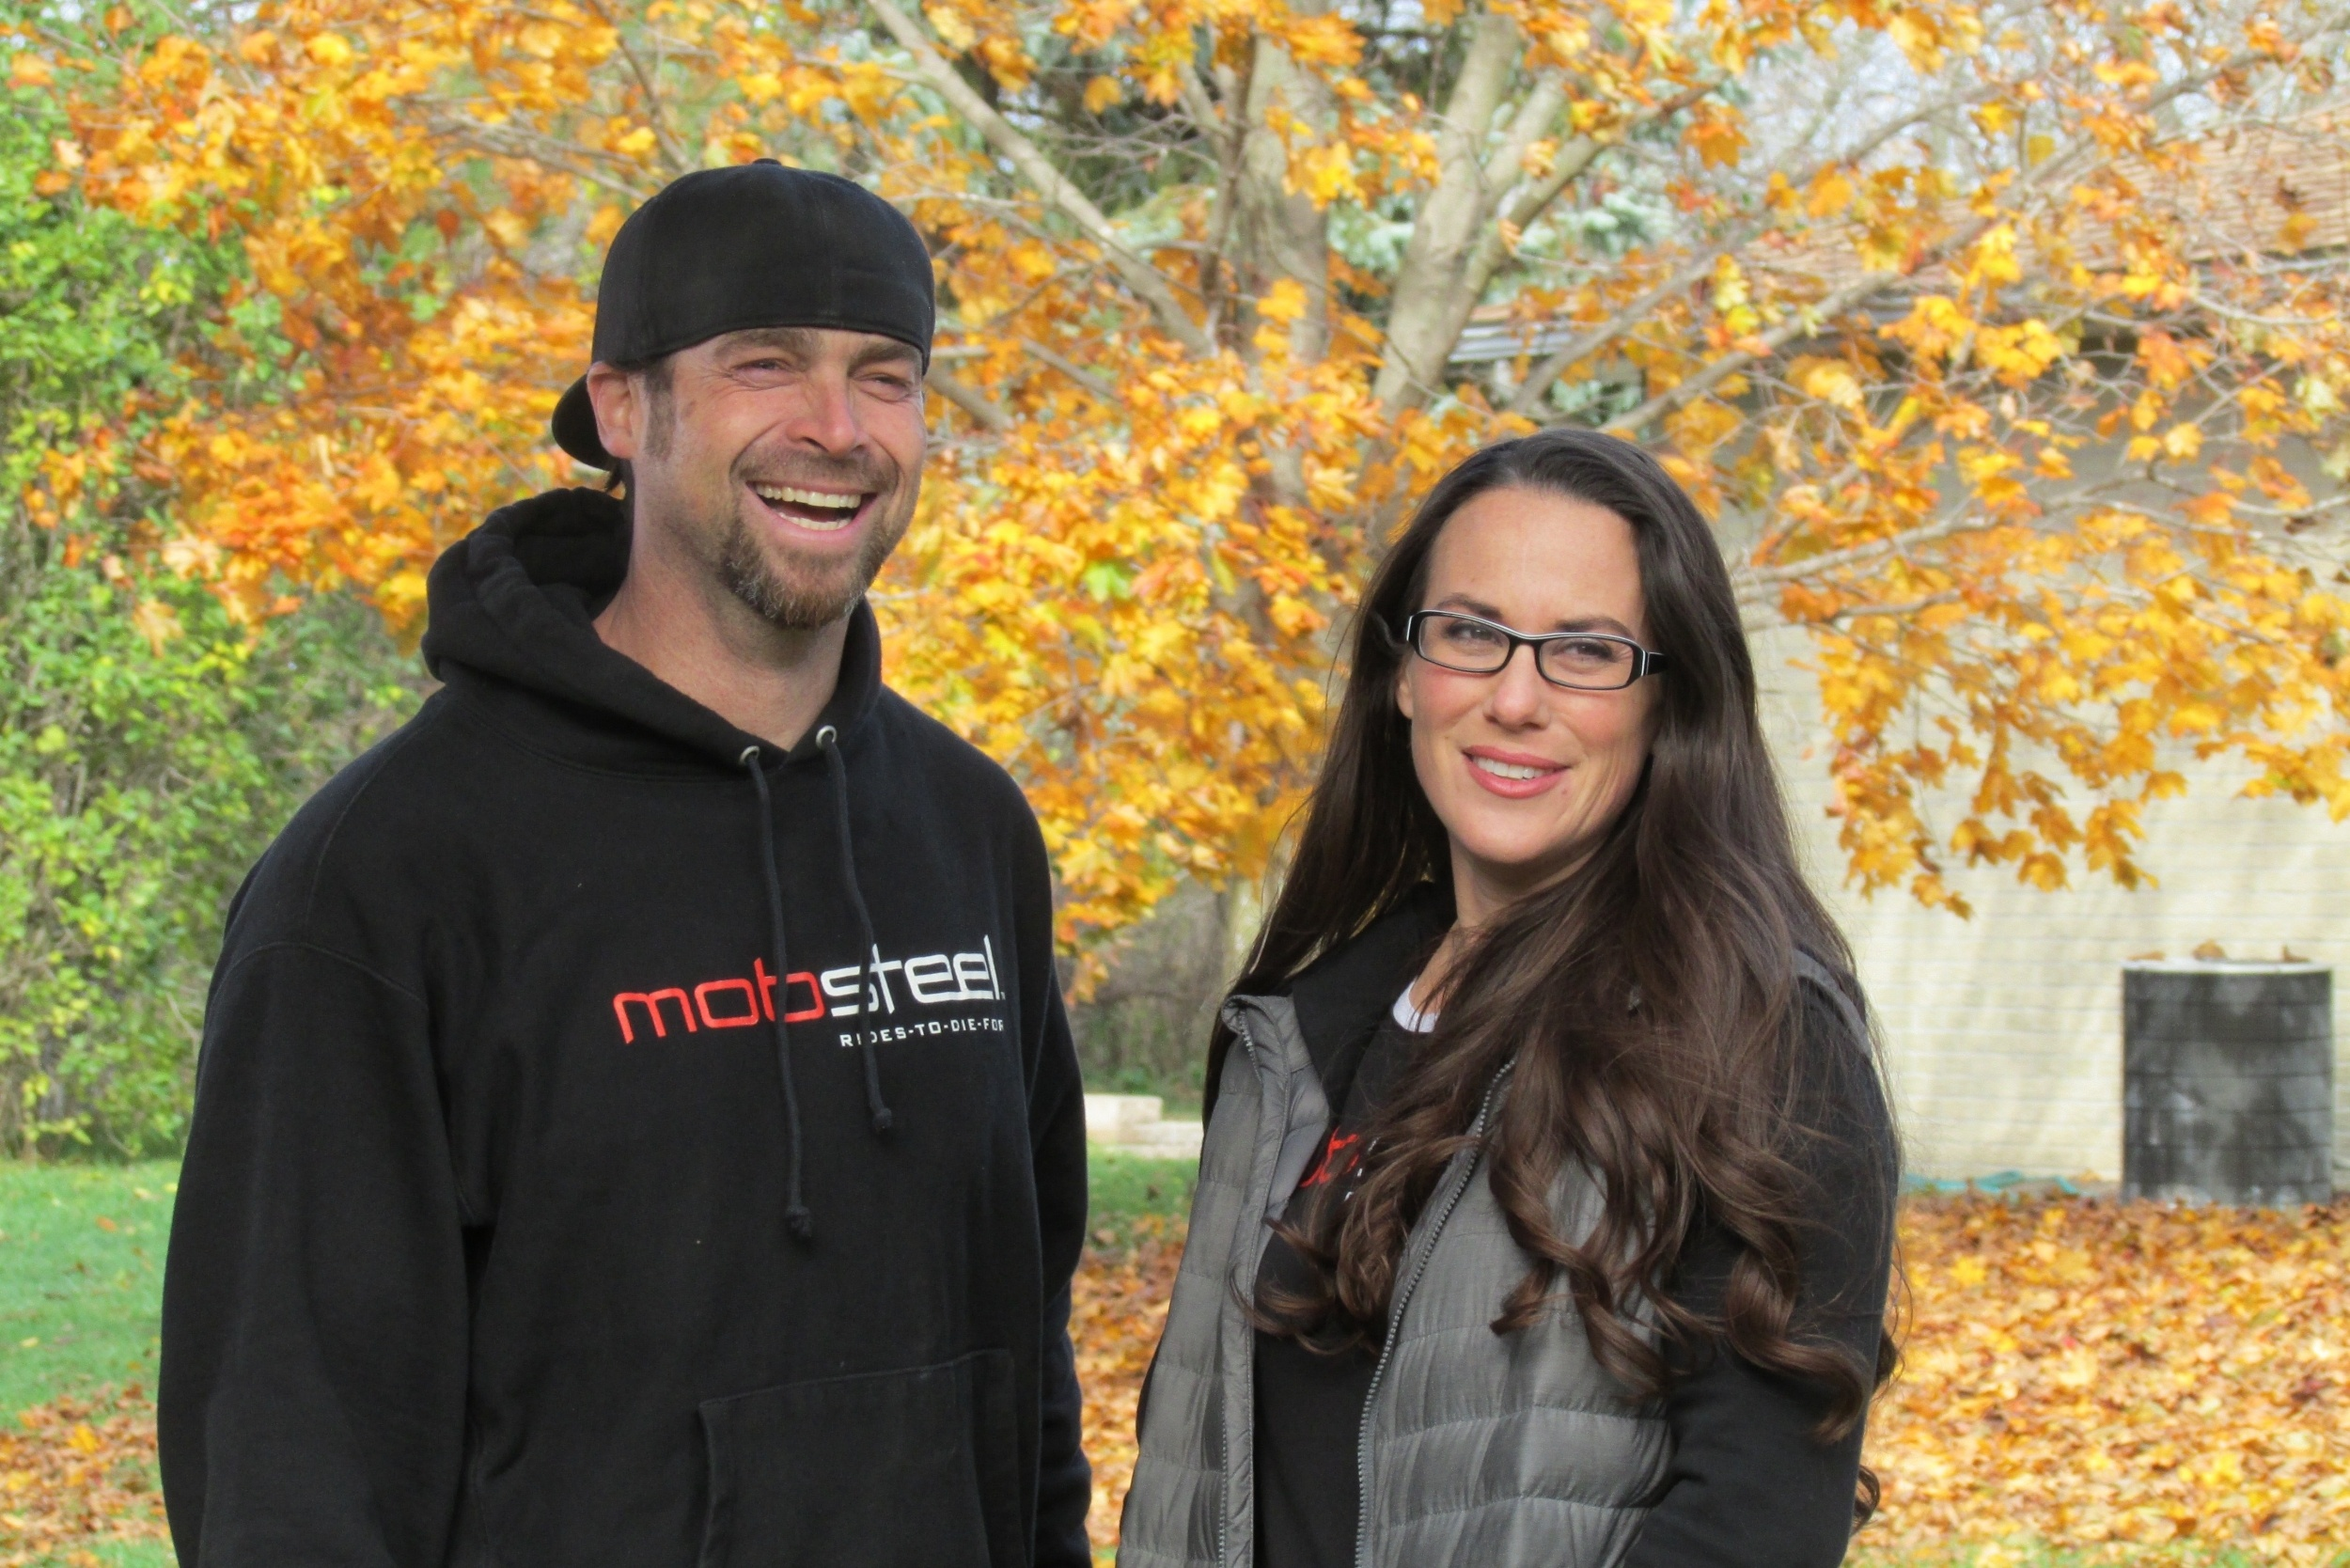 Pam and Adam Genei Owners of Mobsteel